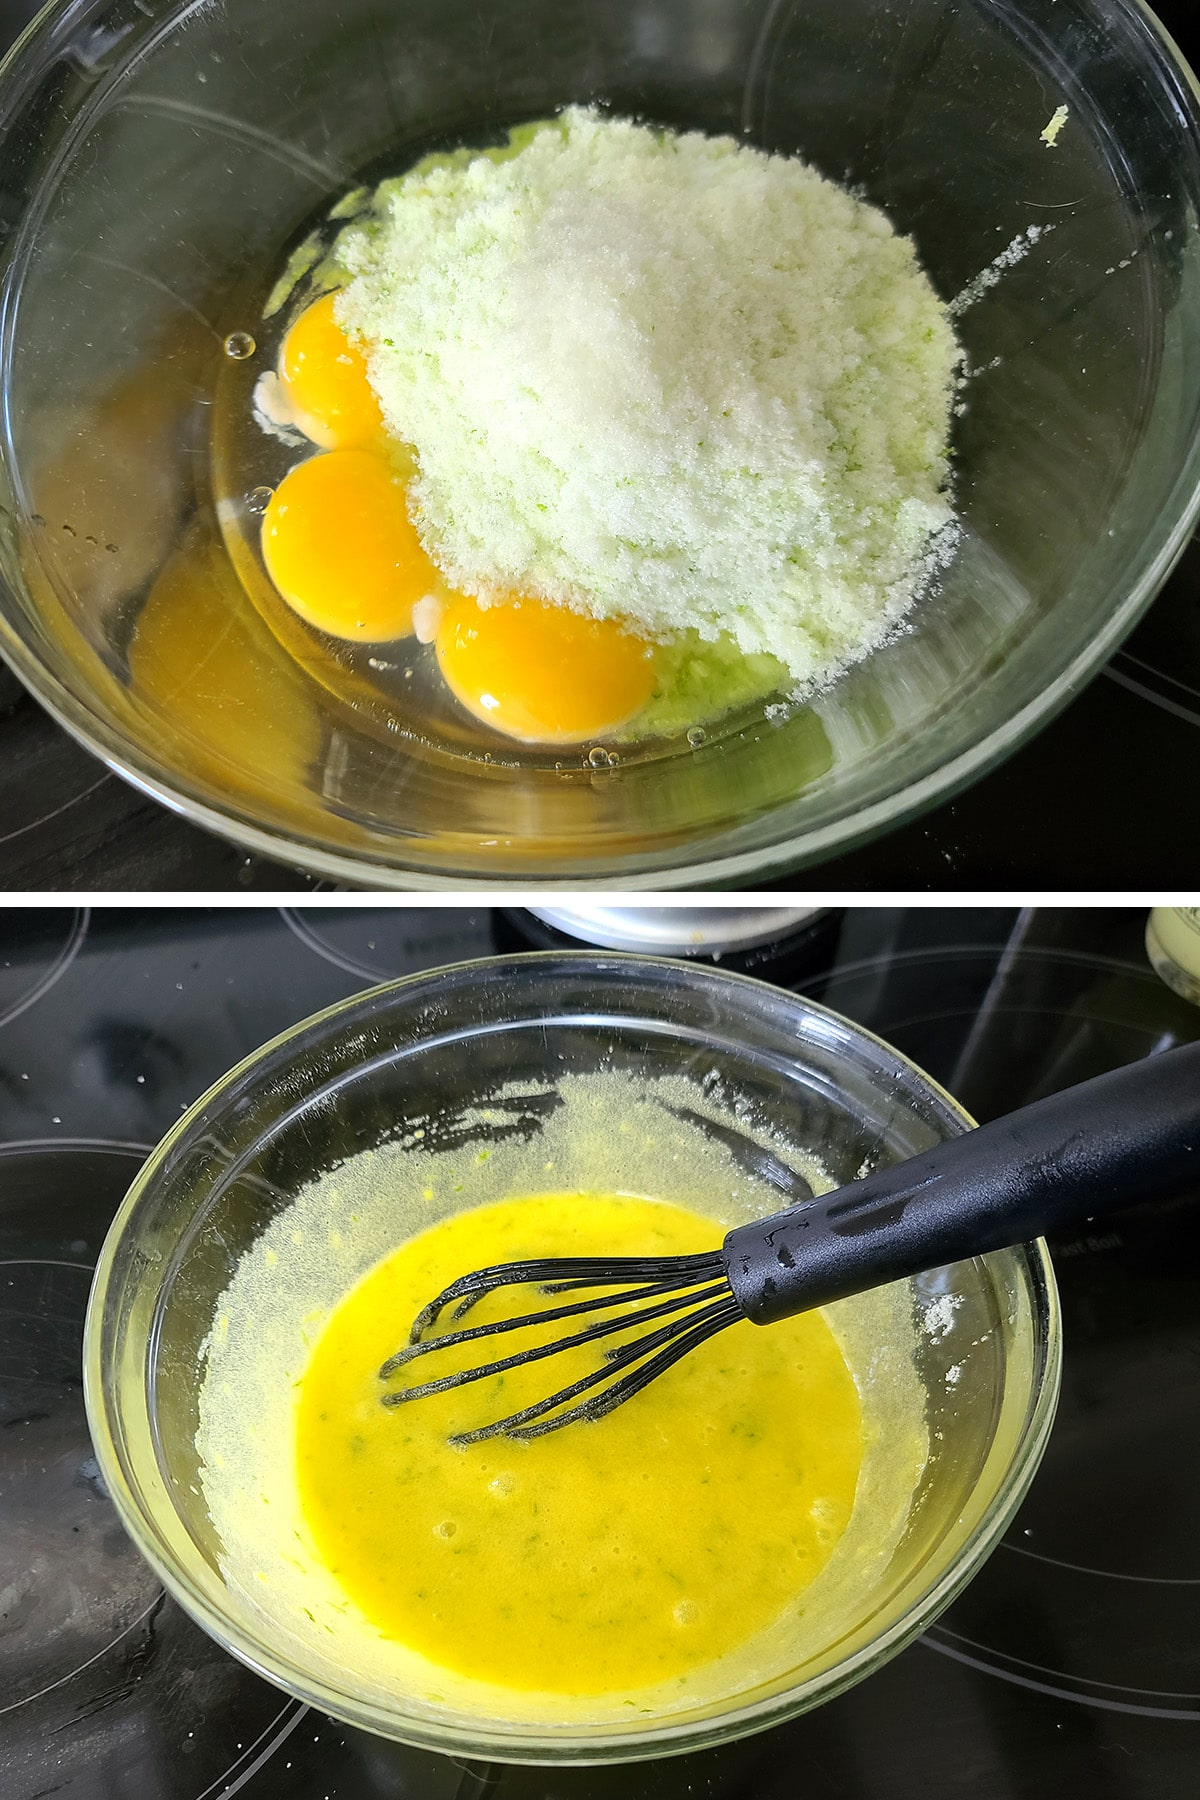 Egg yolks and lime sugar being whisked together.